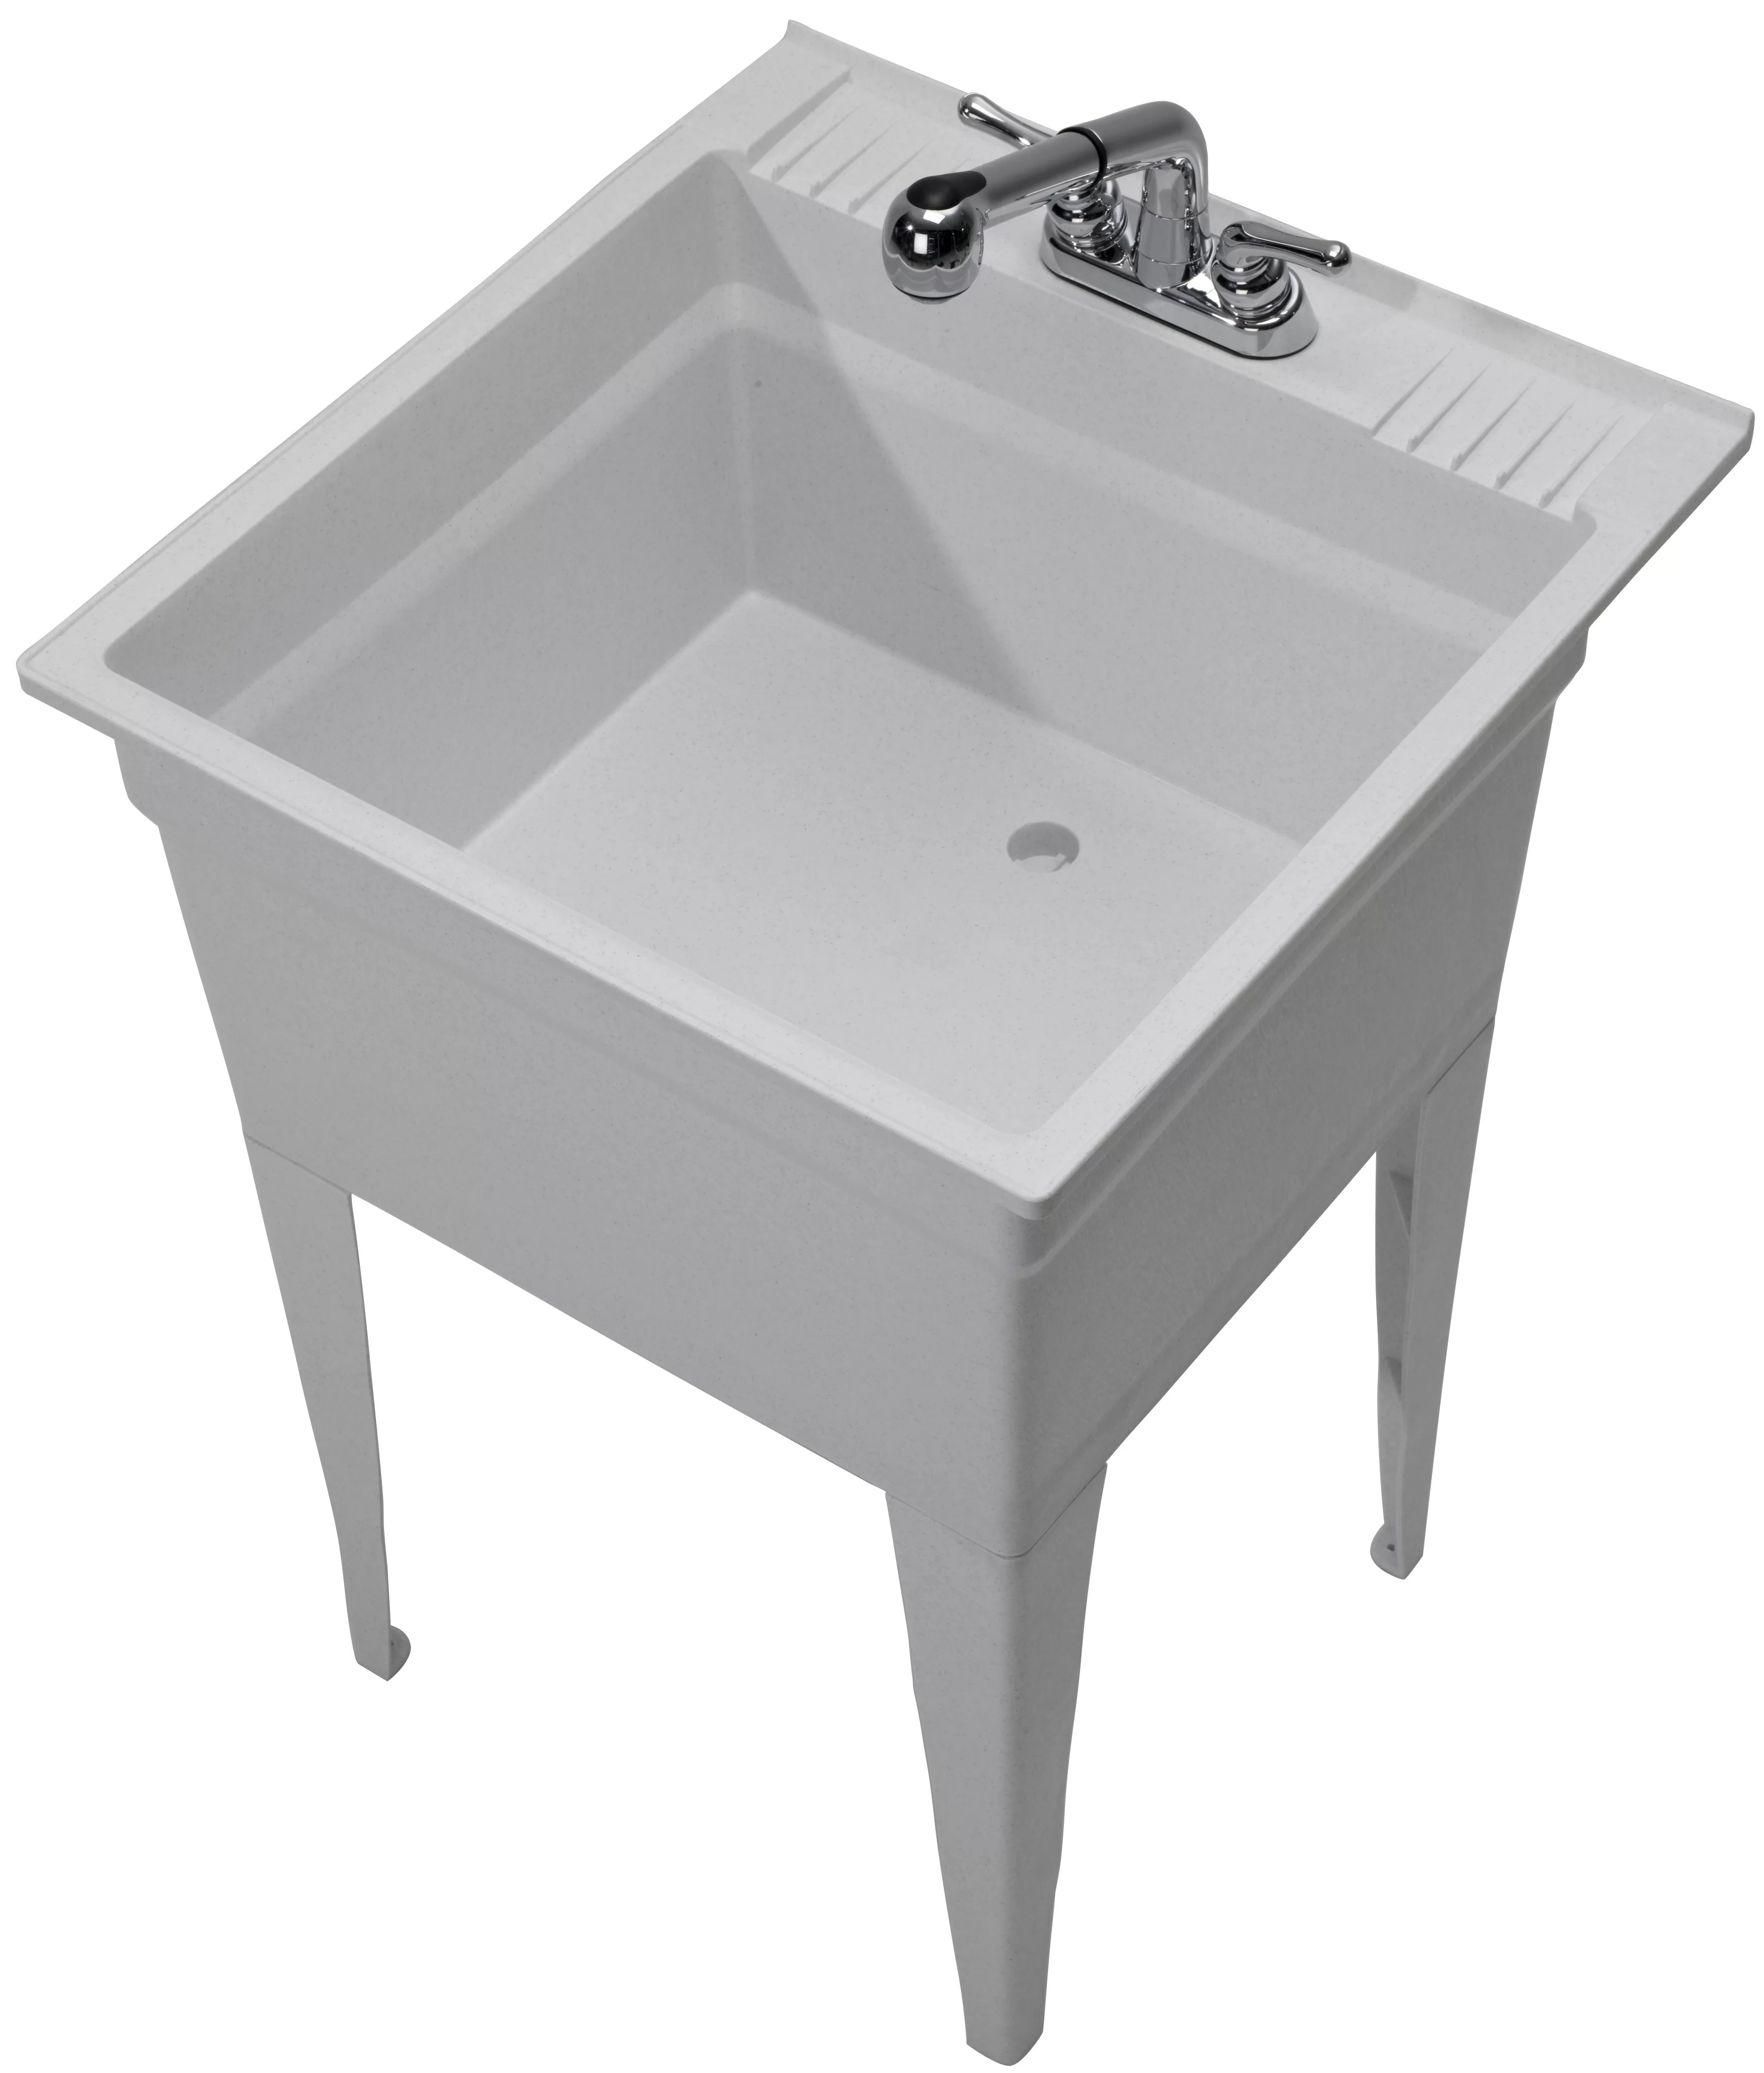 heavy duty 23 75 x 24 75 freestanding laundry sink with faucet